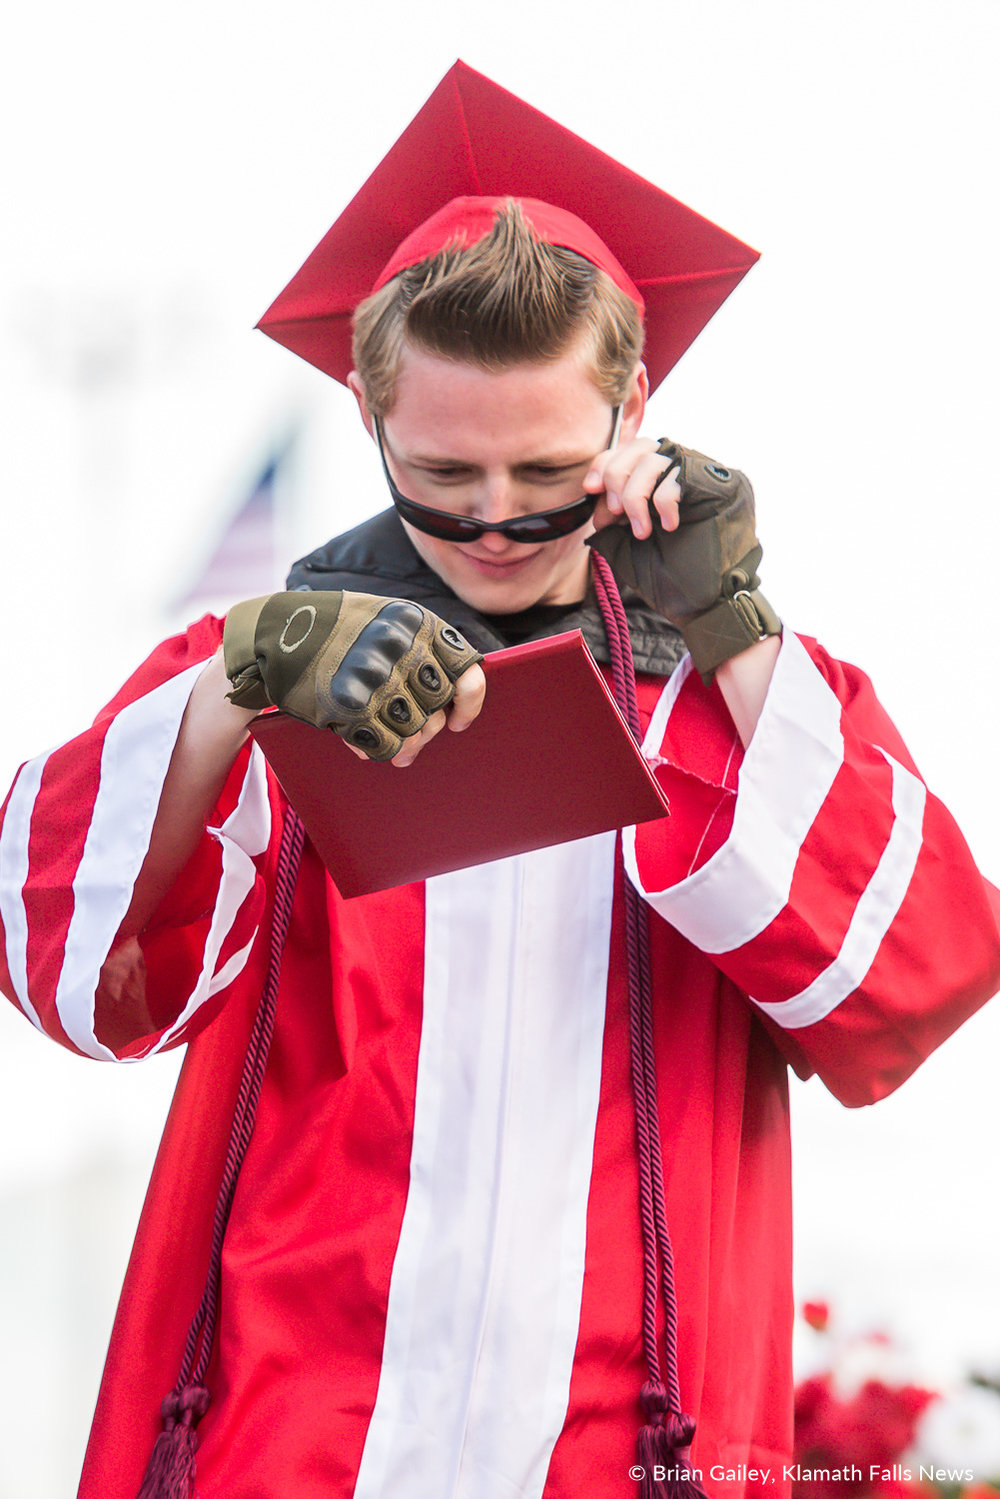 A KUHS graduate walks across the stage examining the diploma to make sure it is real. June 9, 2018 (Brian Gailey).